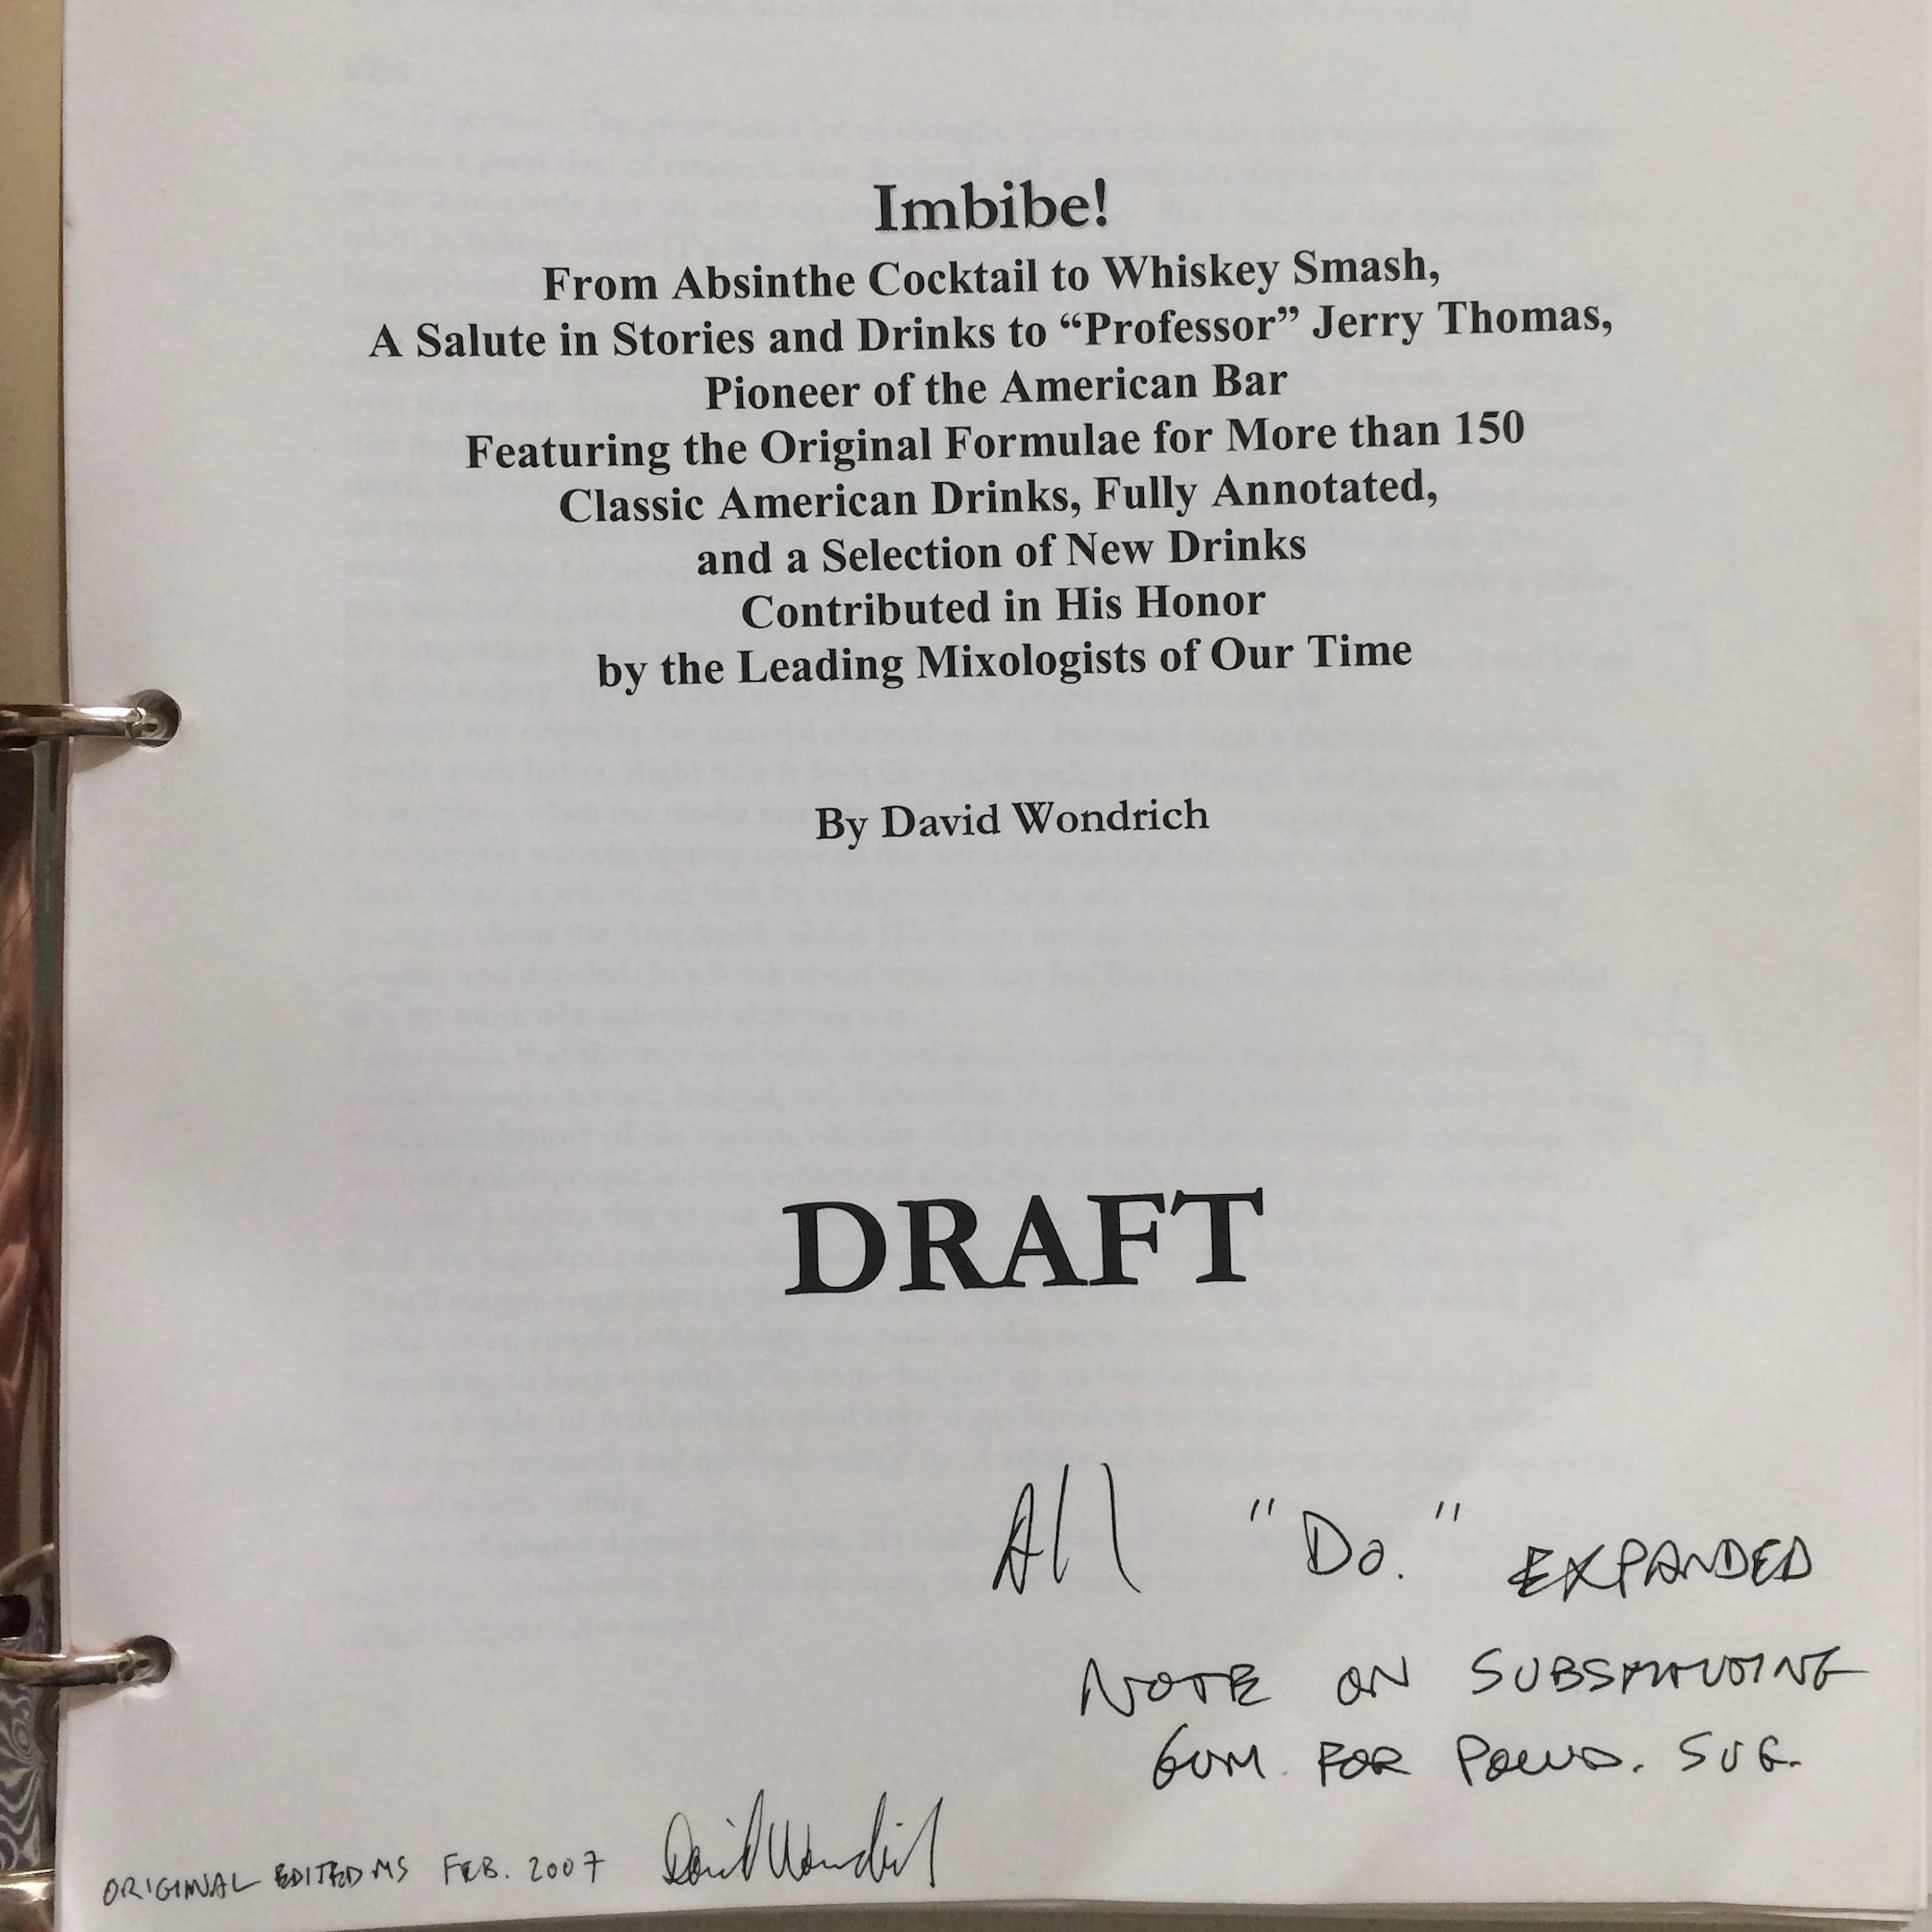 David Wondrich Collection - This collection includes bound drafts of Wondrich's books Imbibe! (February, 2007, pictured left) and Punch: Or the Delights (and Dangers) of the Flowing Bowl (original draft with edits in red, 5/03/2010).See an item-level PDF finding aid.